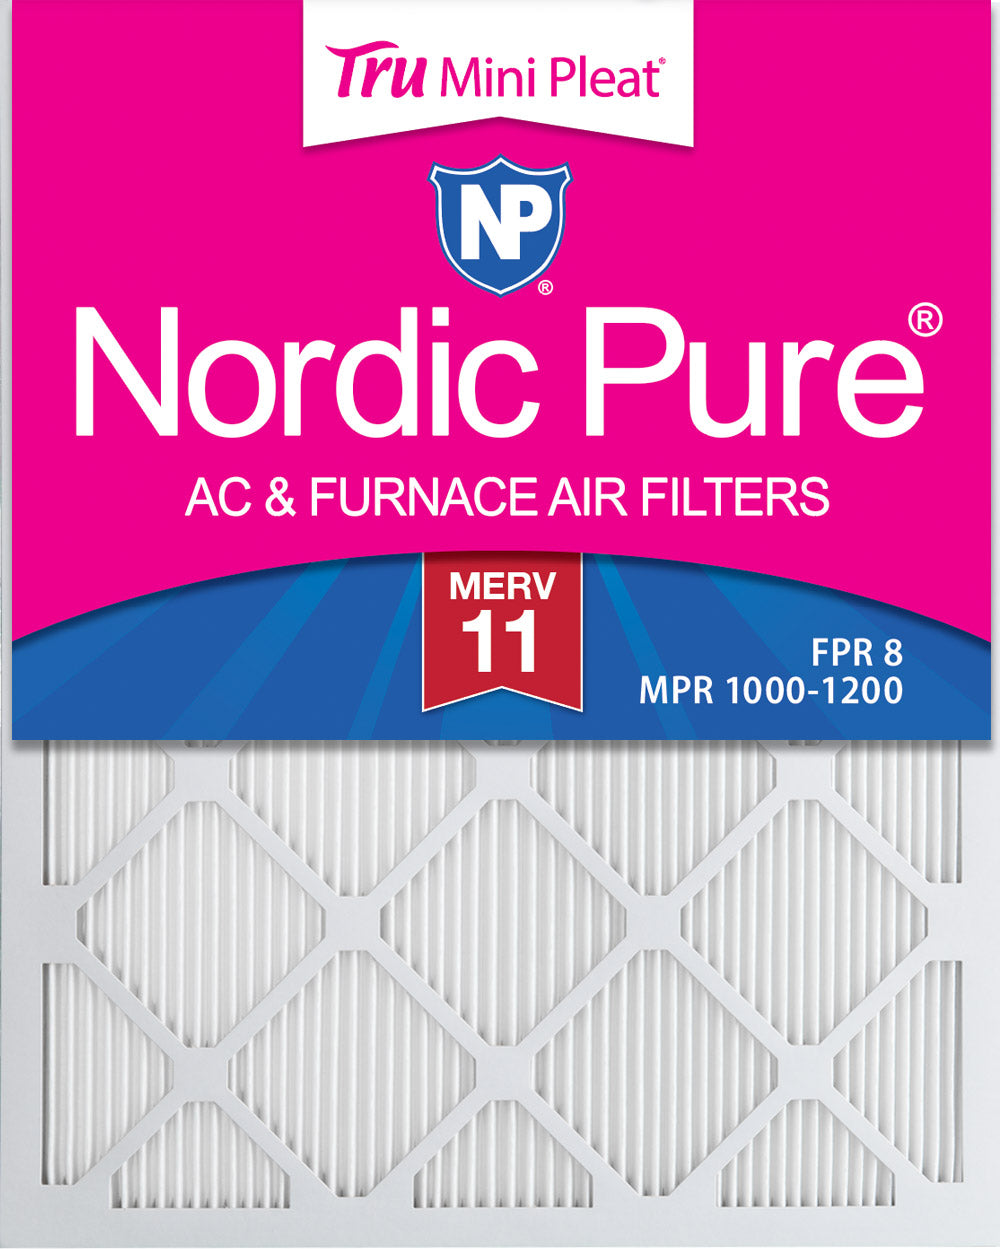 14x30x1 Tru Mini Pleat MERV 11 AC Furnace Air Filters 6 Pack